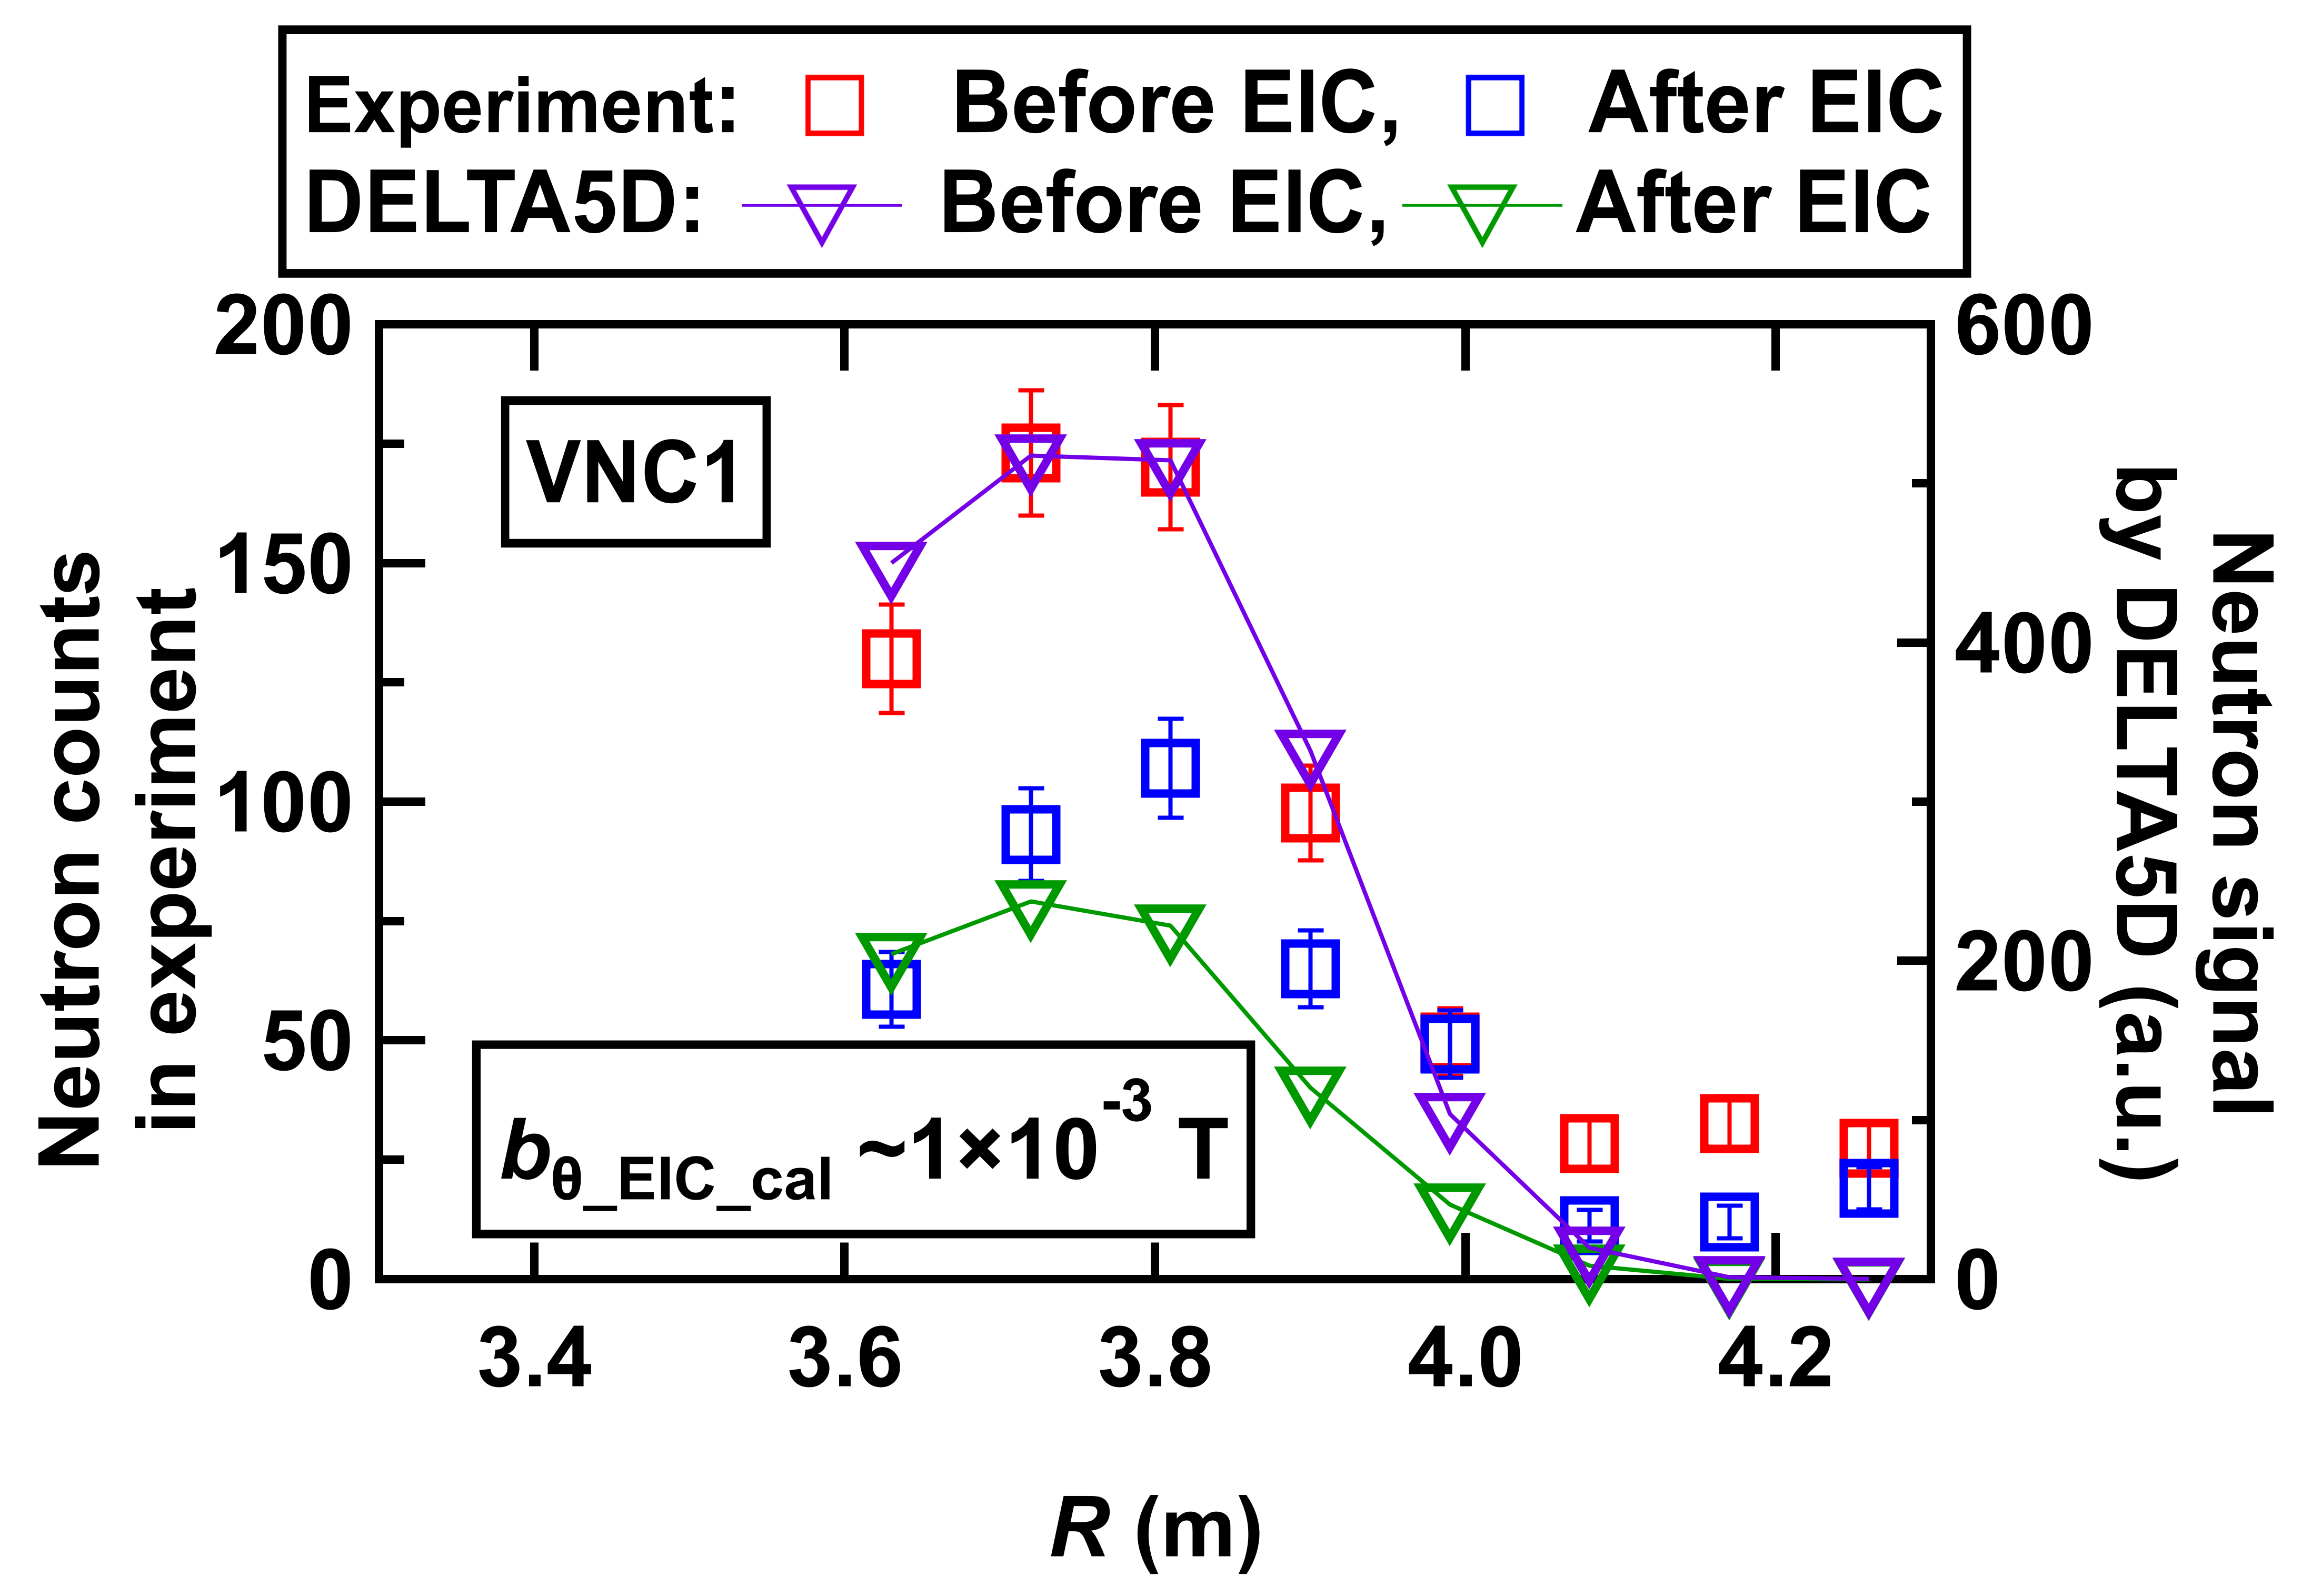 Deformation of the line-integrated neutron emission profile owing to the EIC mode obtained in the experiment and calculated by the orbit following simulation (DELTA5D).